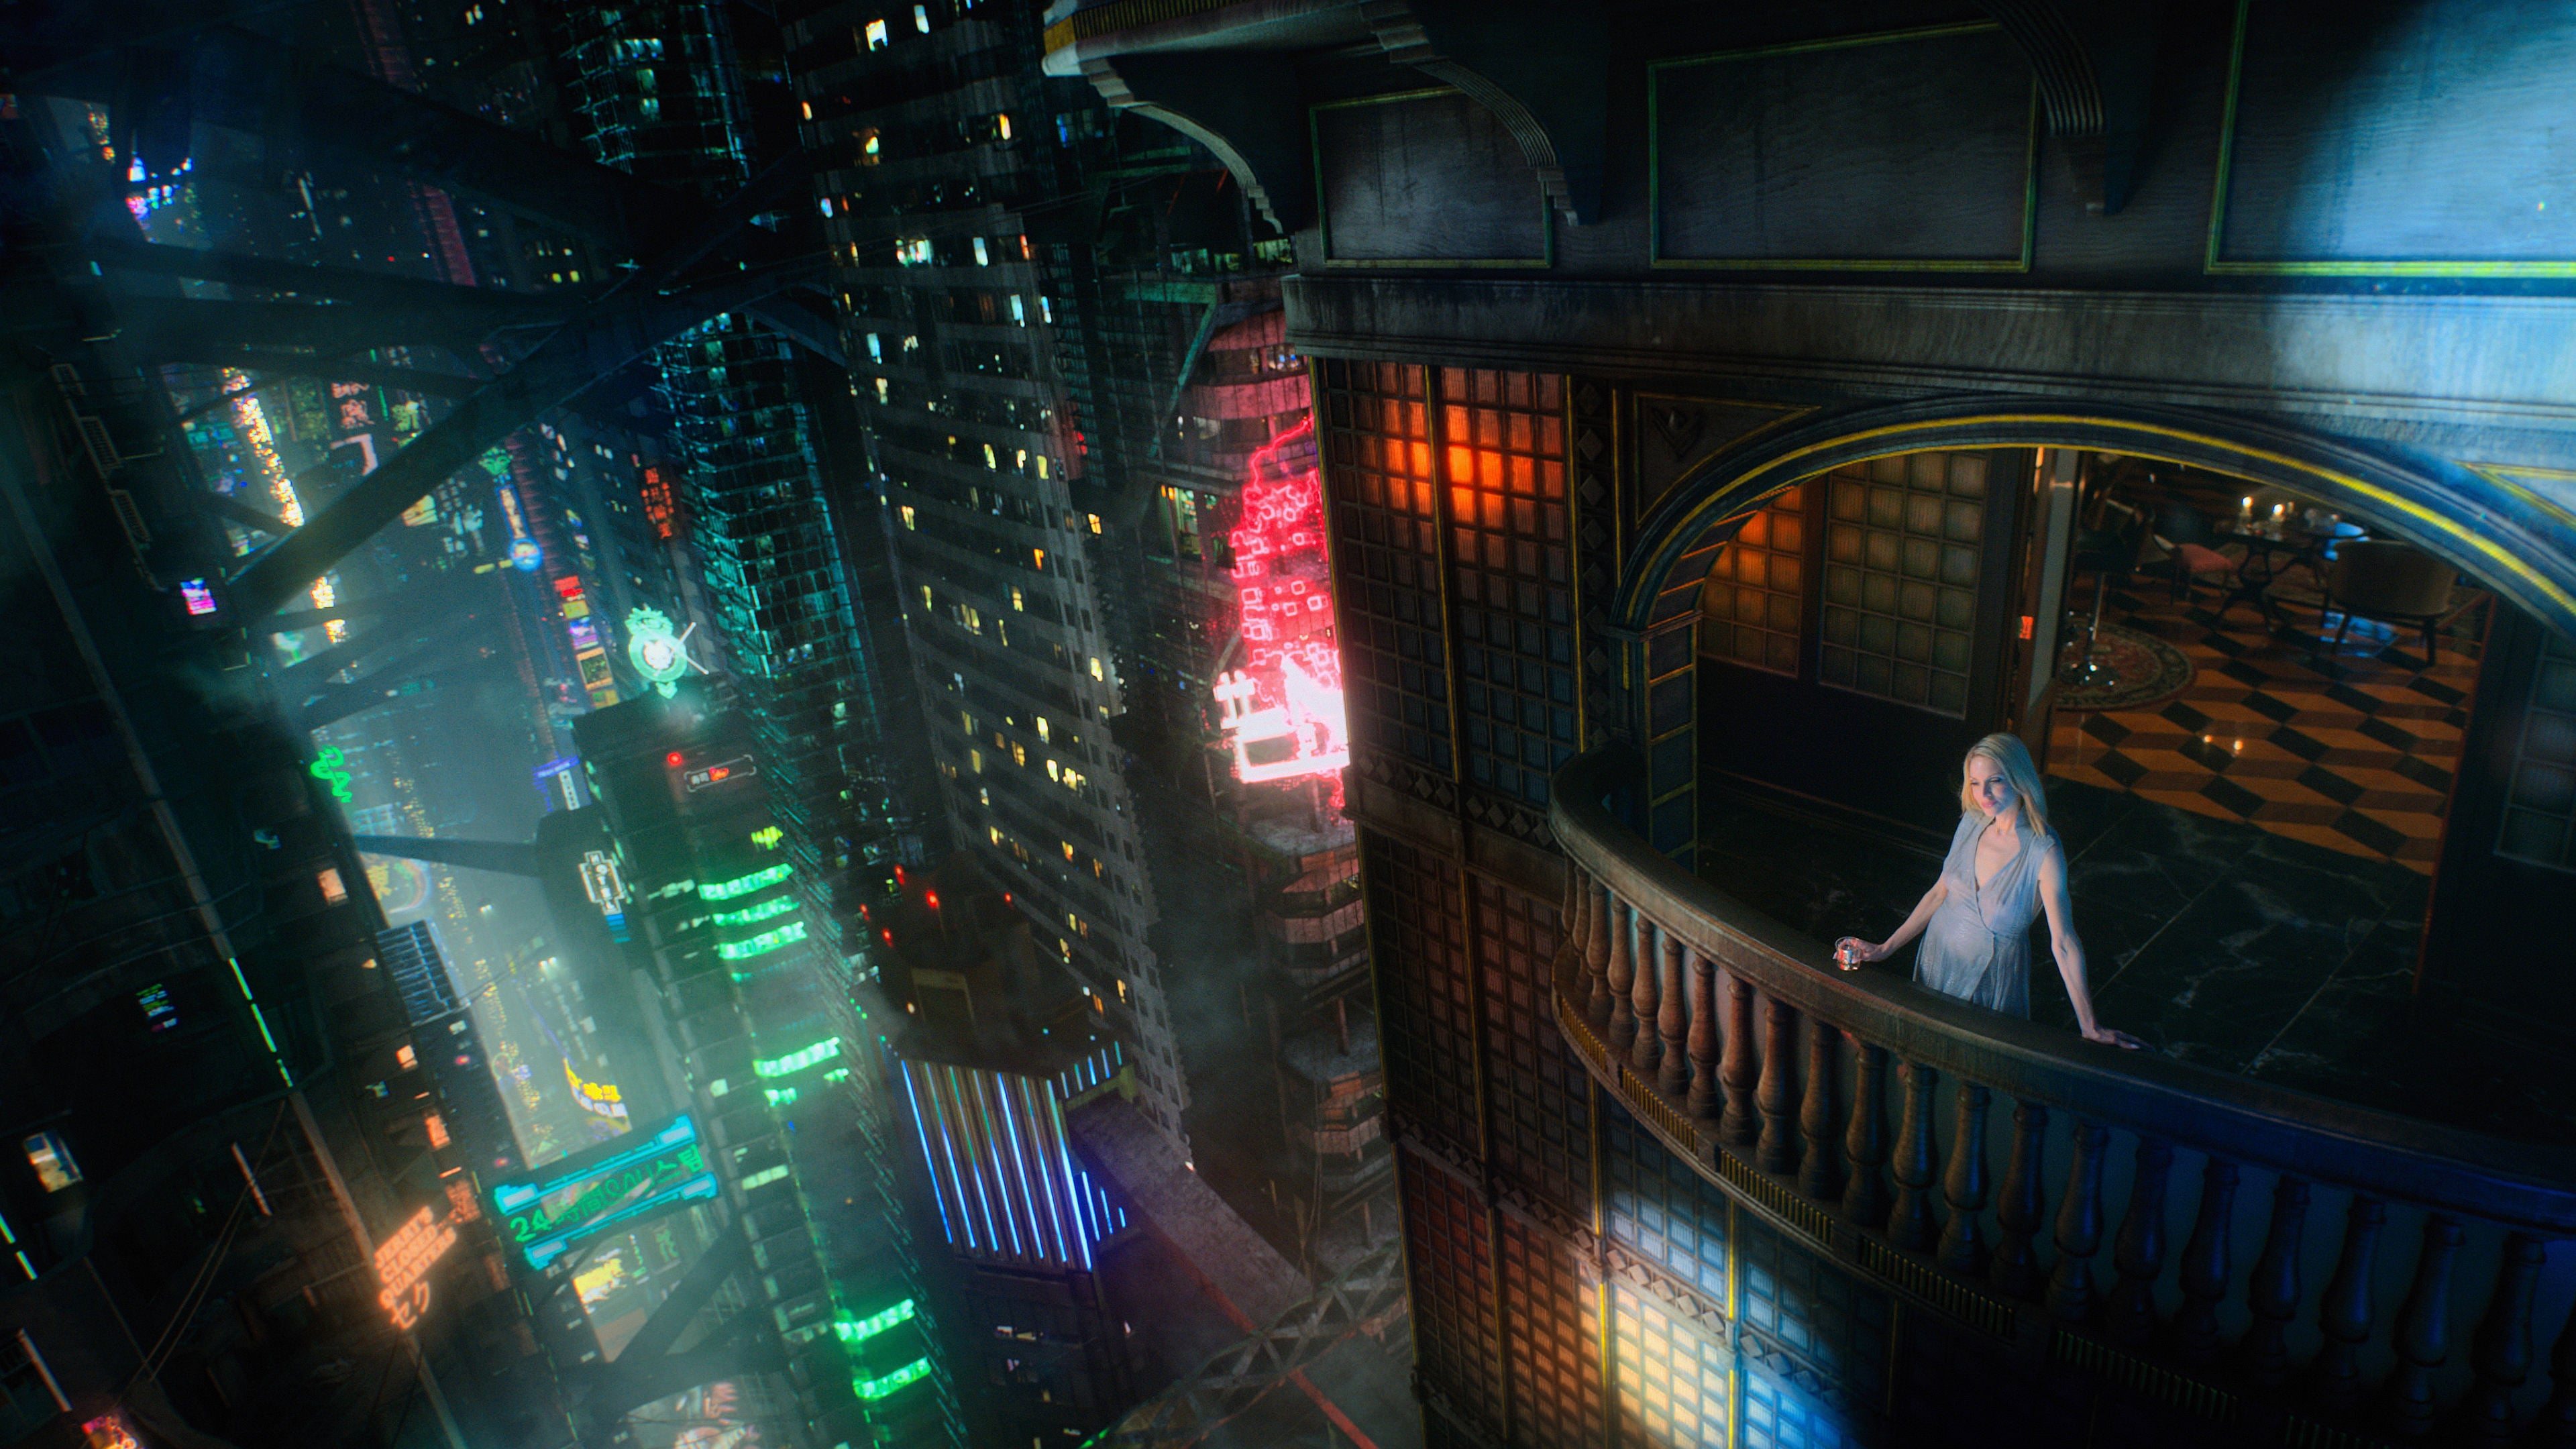 altered carbon 2018 4k, hd tv shows, 4k wallpapers, images